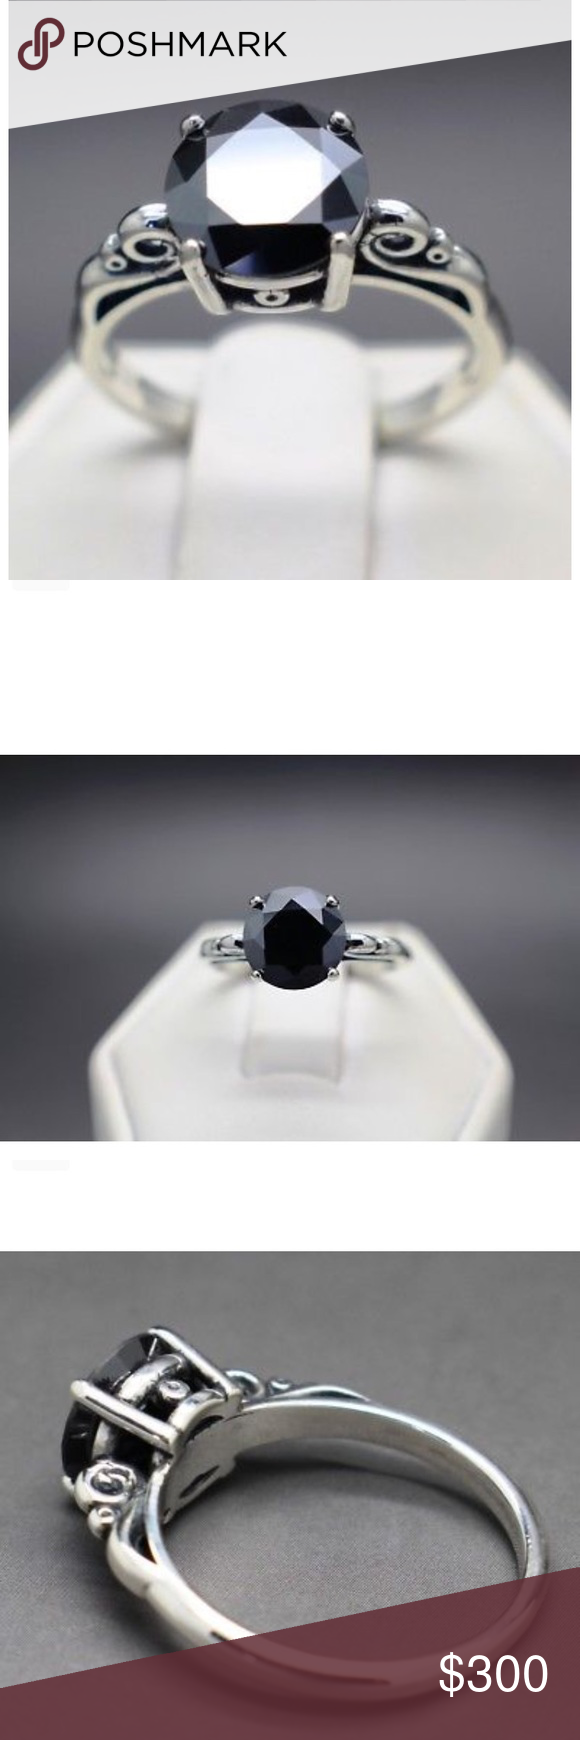 1.48cts Black Natural Diamond Solitaire Ring 1.48cts 7